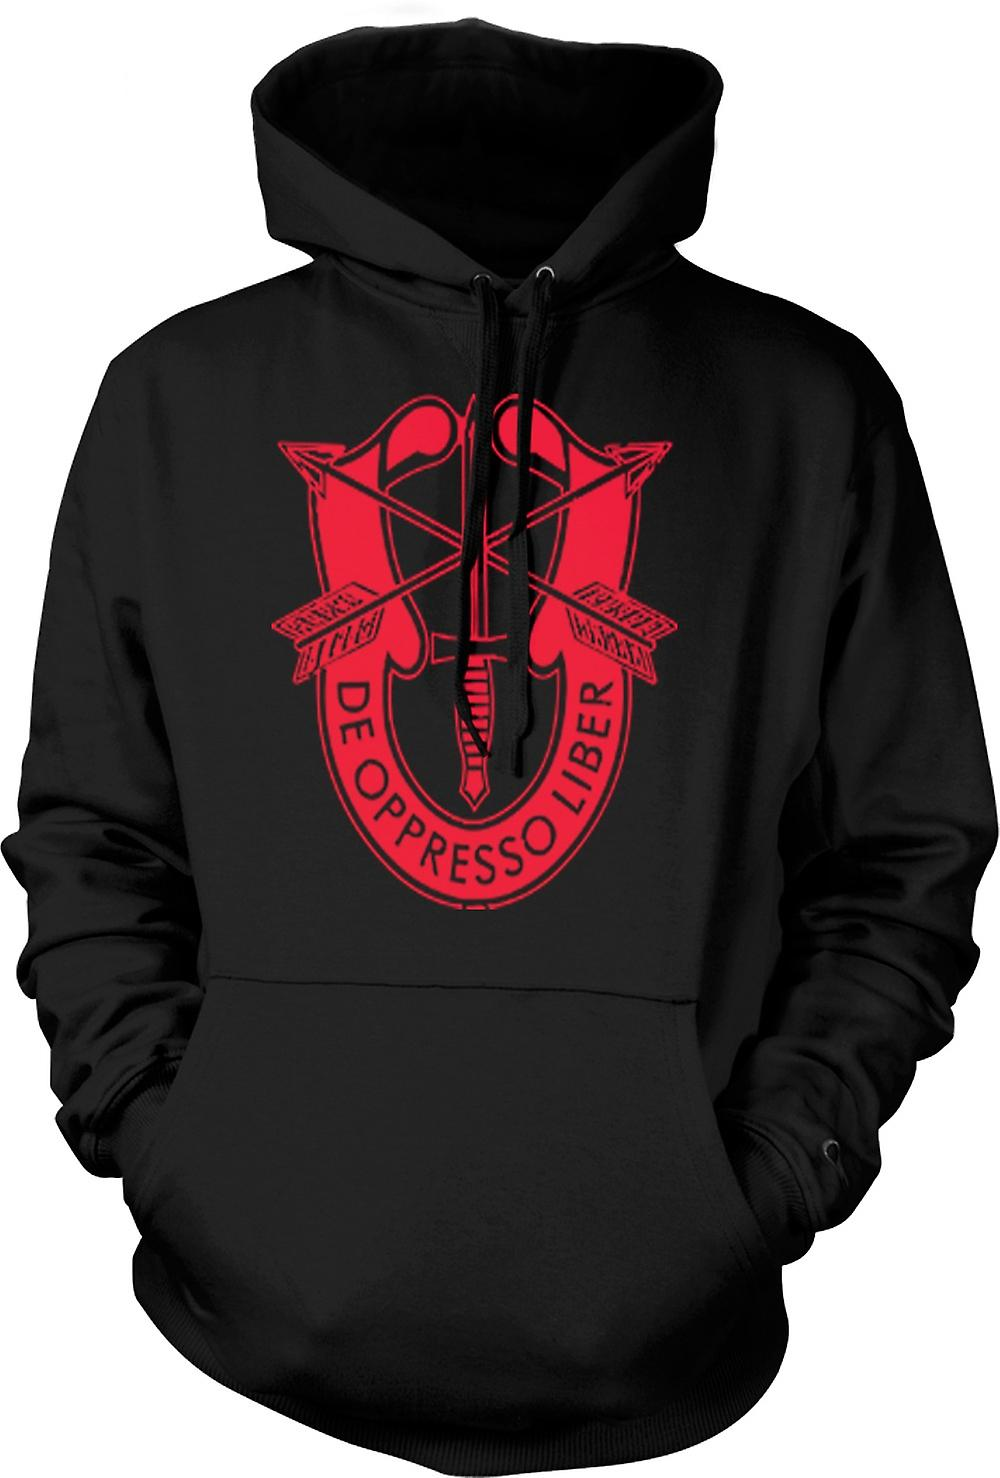 Mens Hoodie - De Oppresso Liber US Special Forces Batch